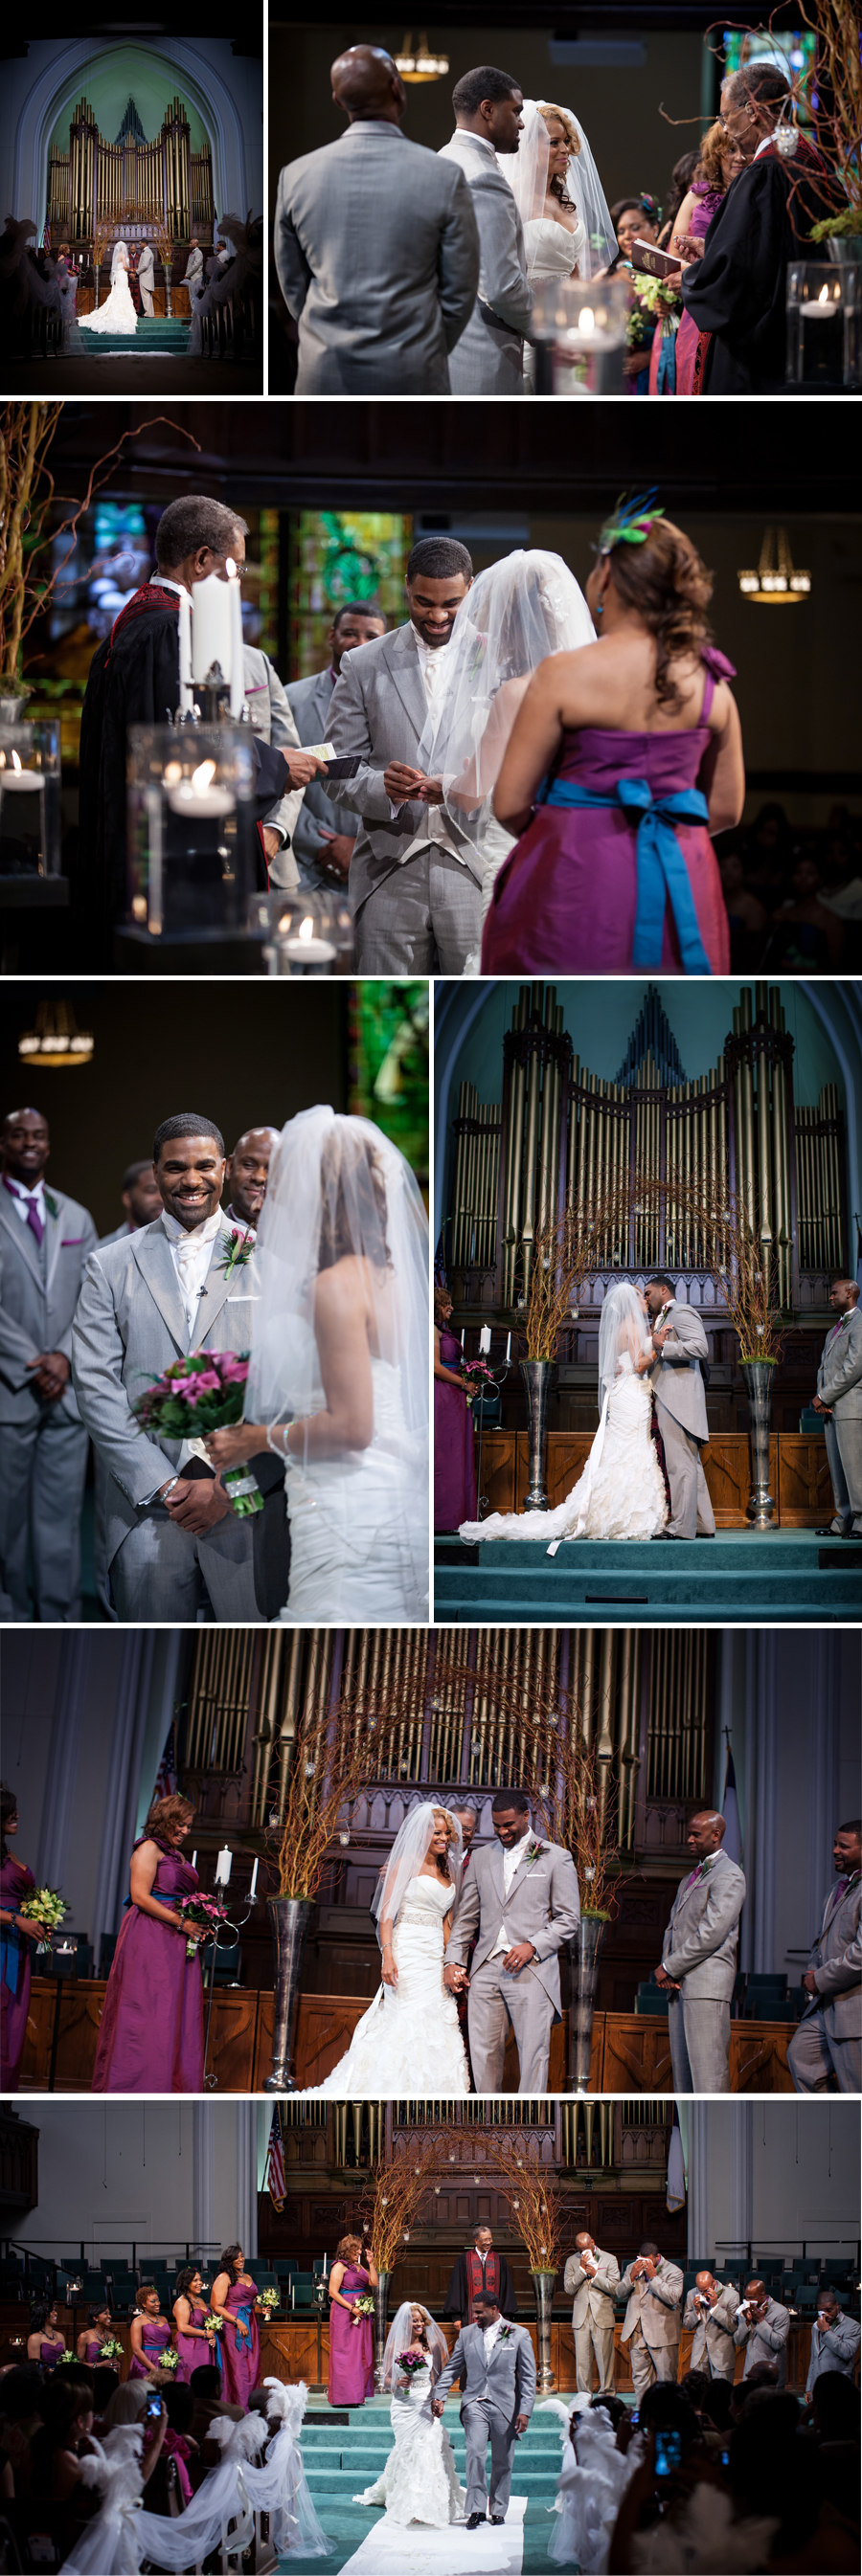 As soon as the couple was announced as Mr. & Mrs. each of the groomsmen pulled out their handkerchiefs on cue to wipe away the tears. The sanctuary erupted into laughter.